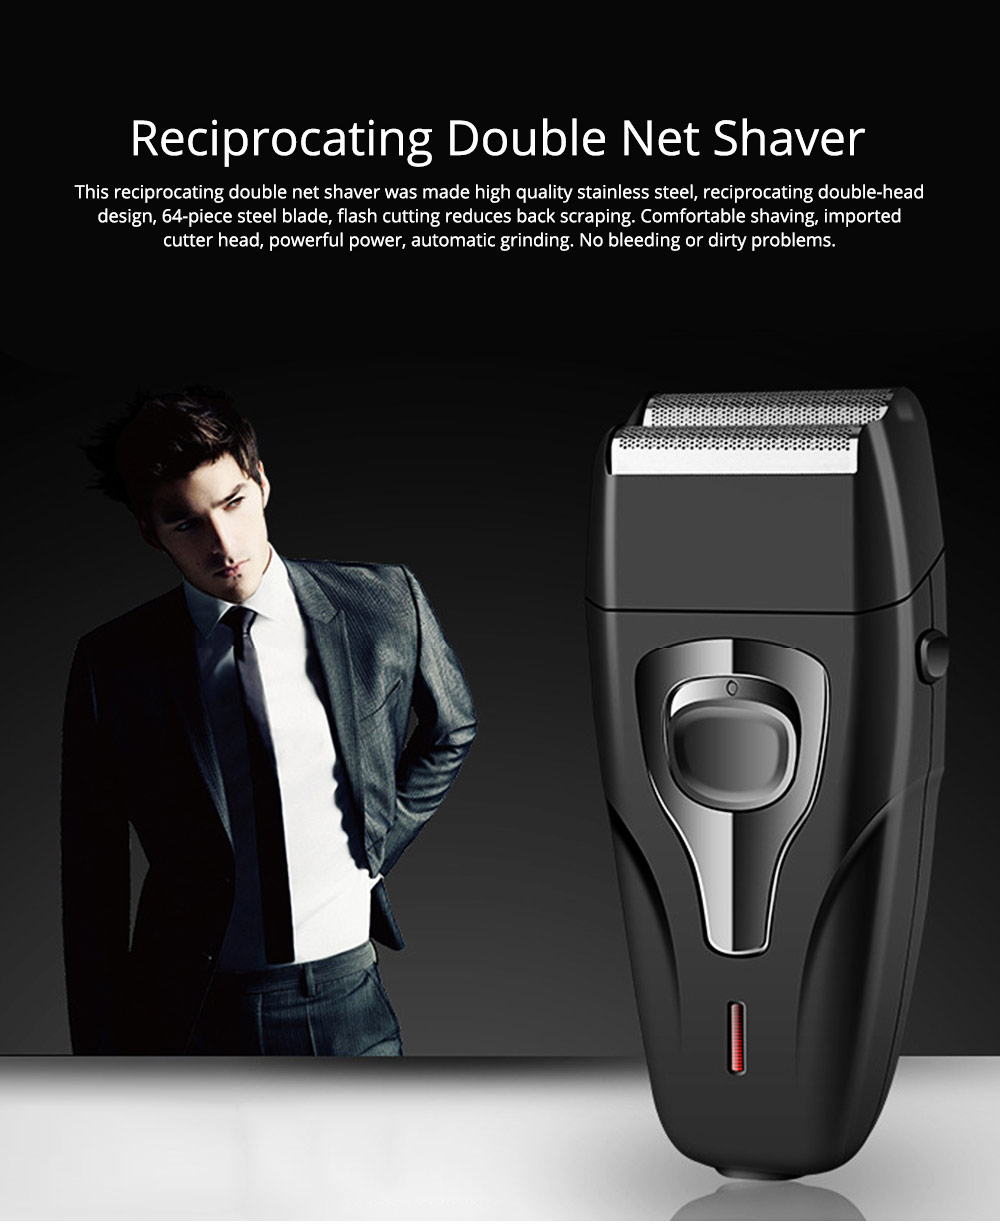 Men's Razor Reciprocating Double Net Shaver Charging Beard Stainless Steel Knife Best Gifts for Men 0